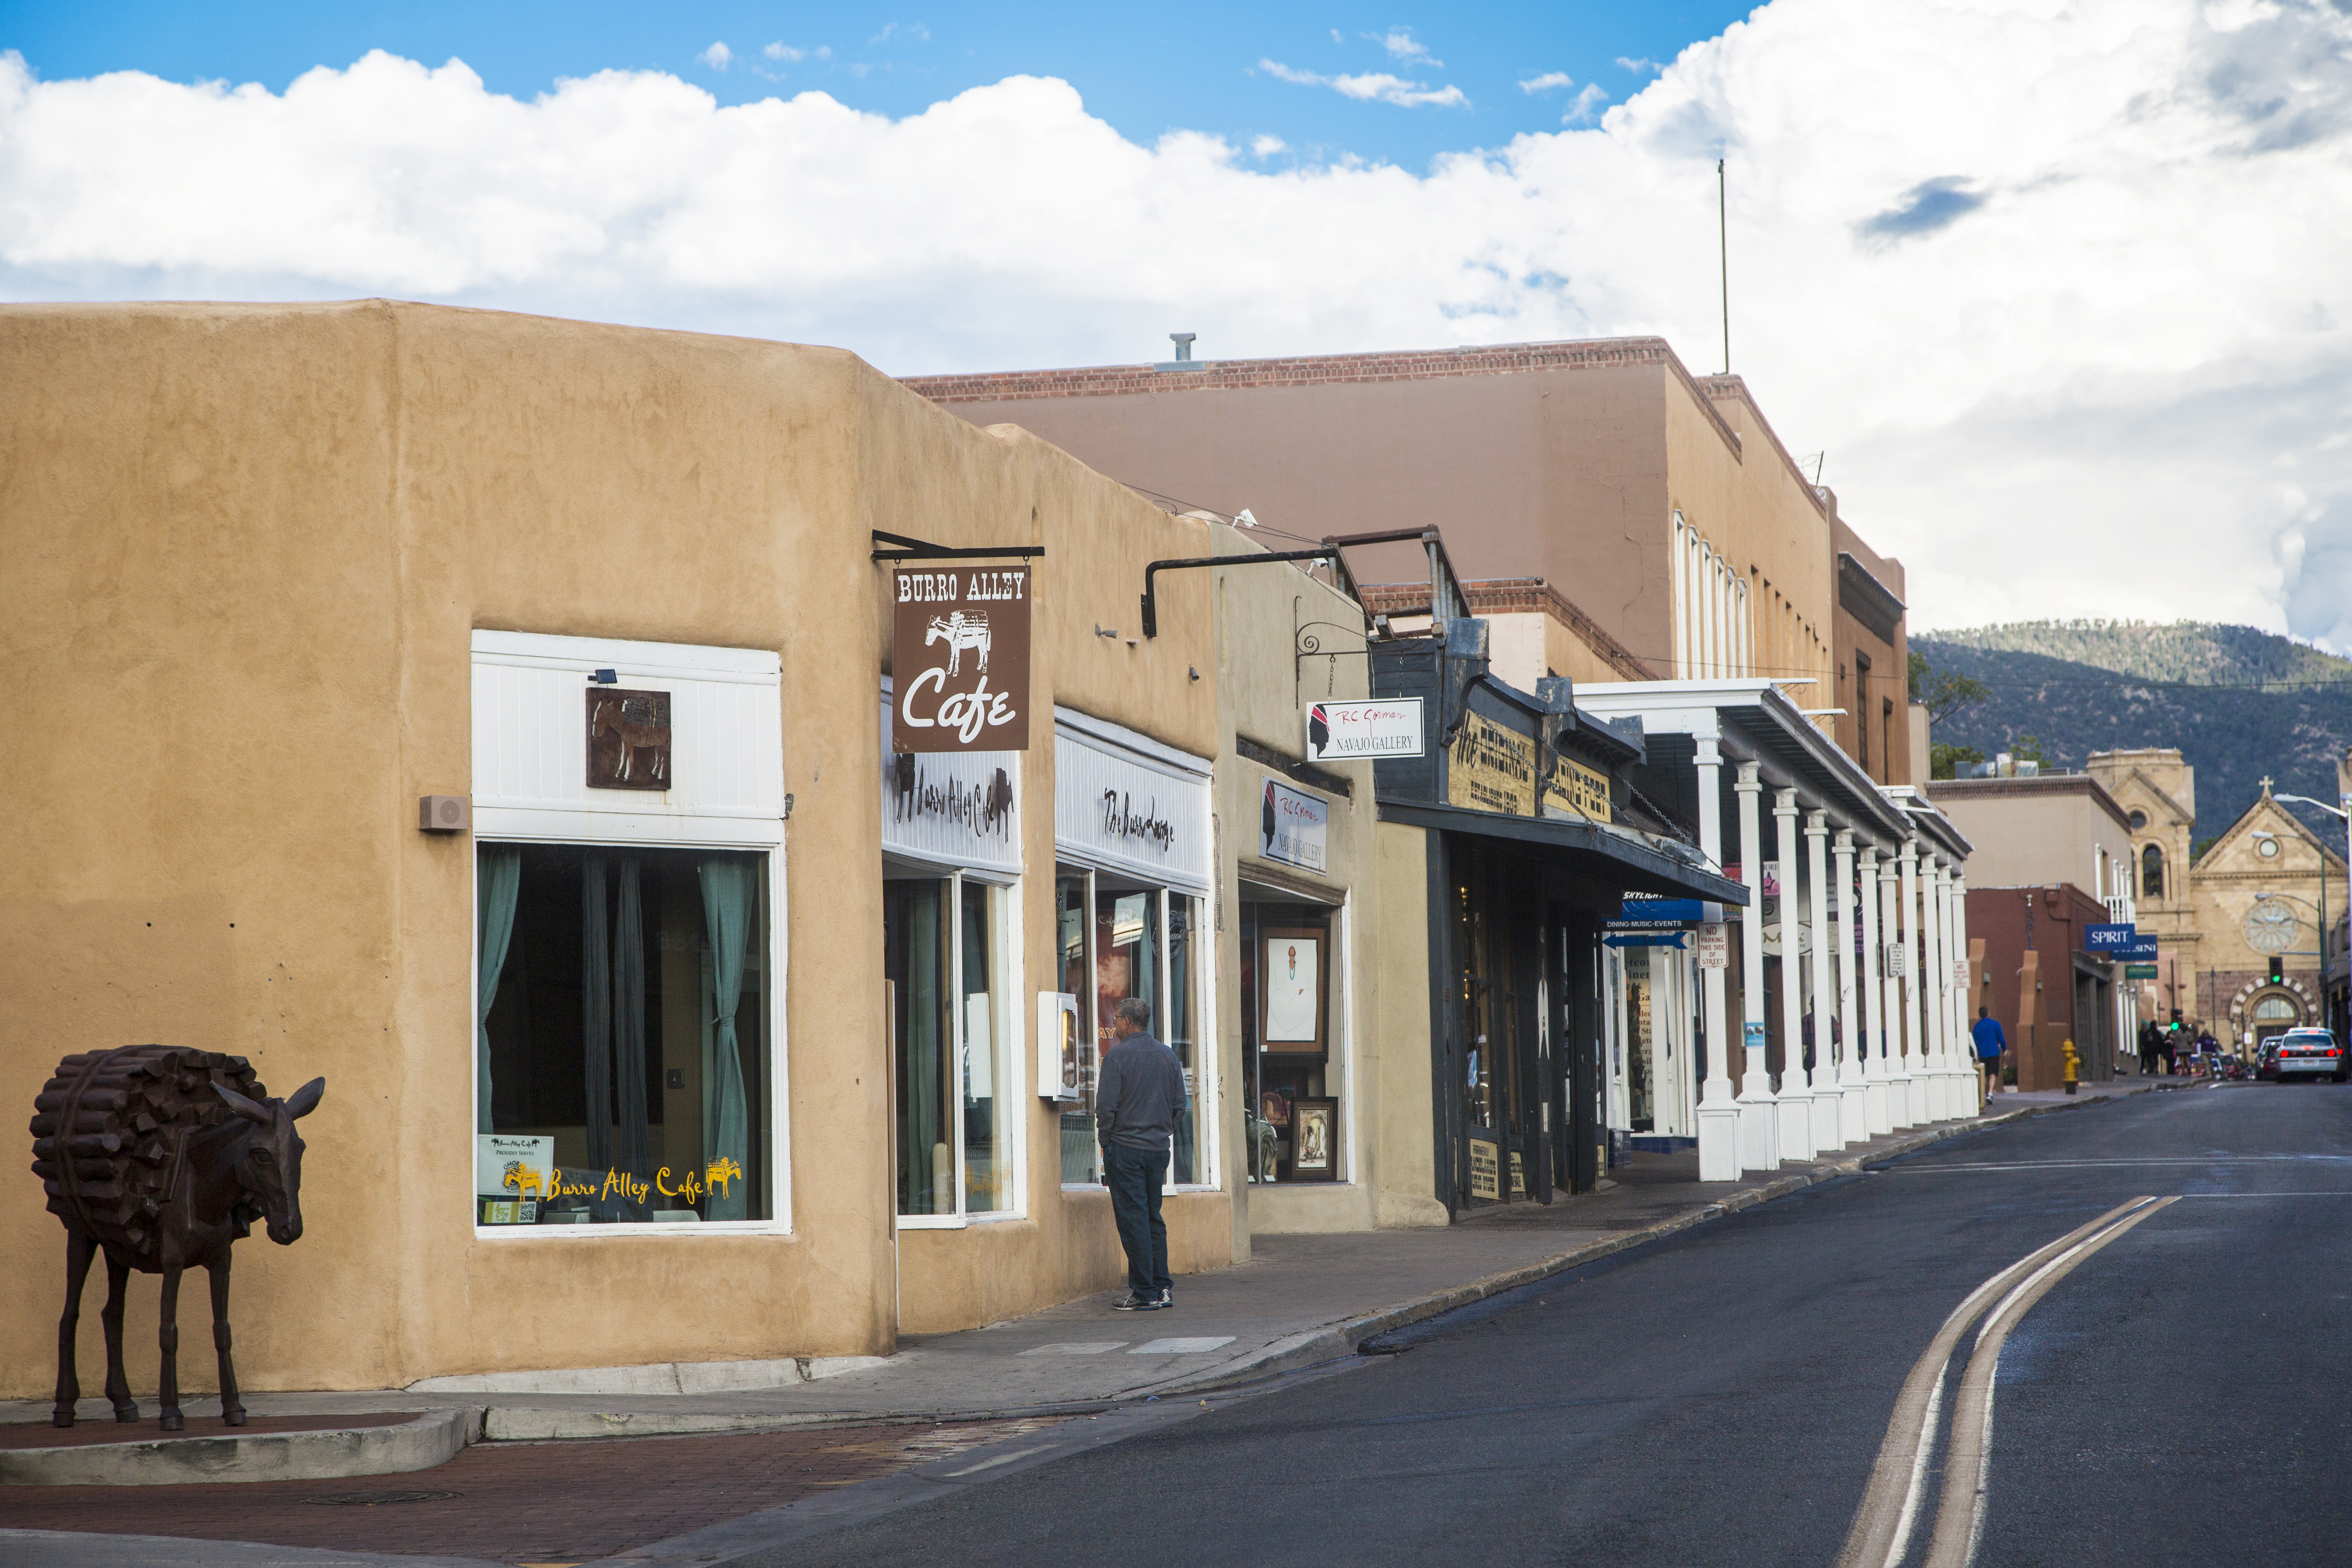 Sante Fe, New Mexico. Living in Santa Fe, which was built by Spanish colonists in 1610, is a bit like living in a museum, thanks to the pueblo-style architecture and Museum Hill, home to the city's substantial  art collections.